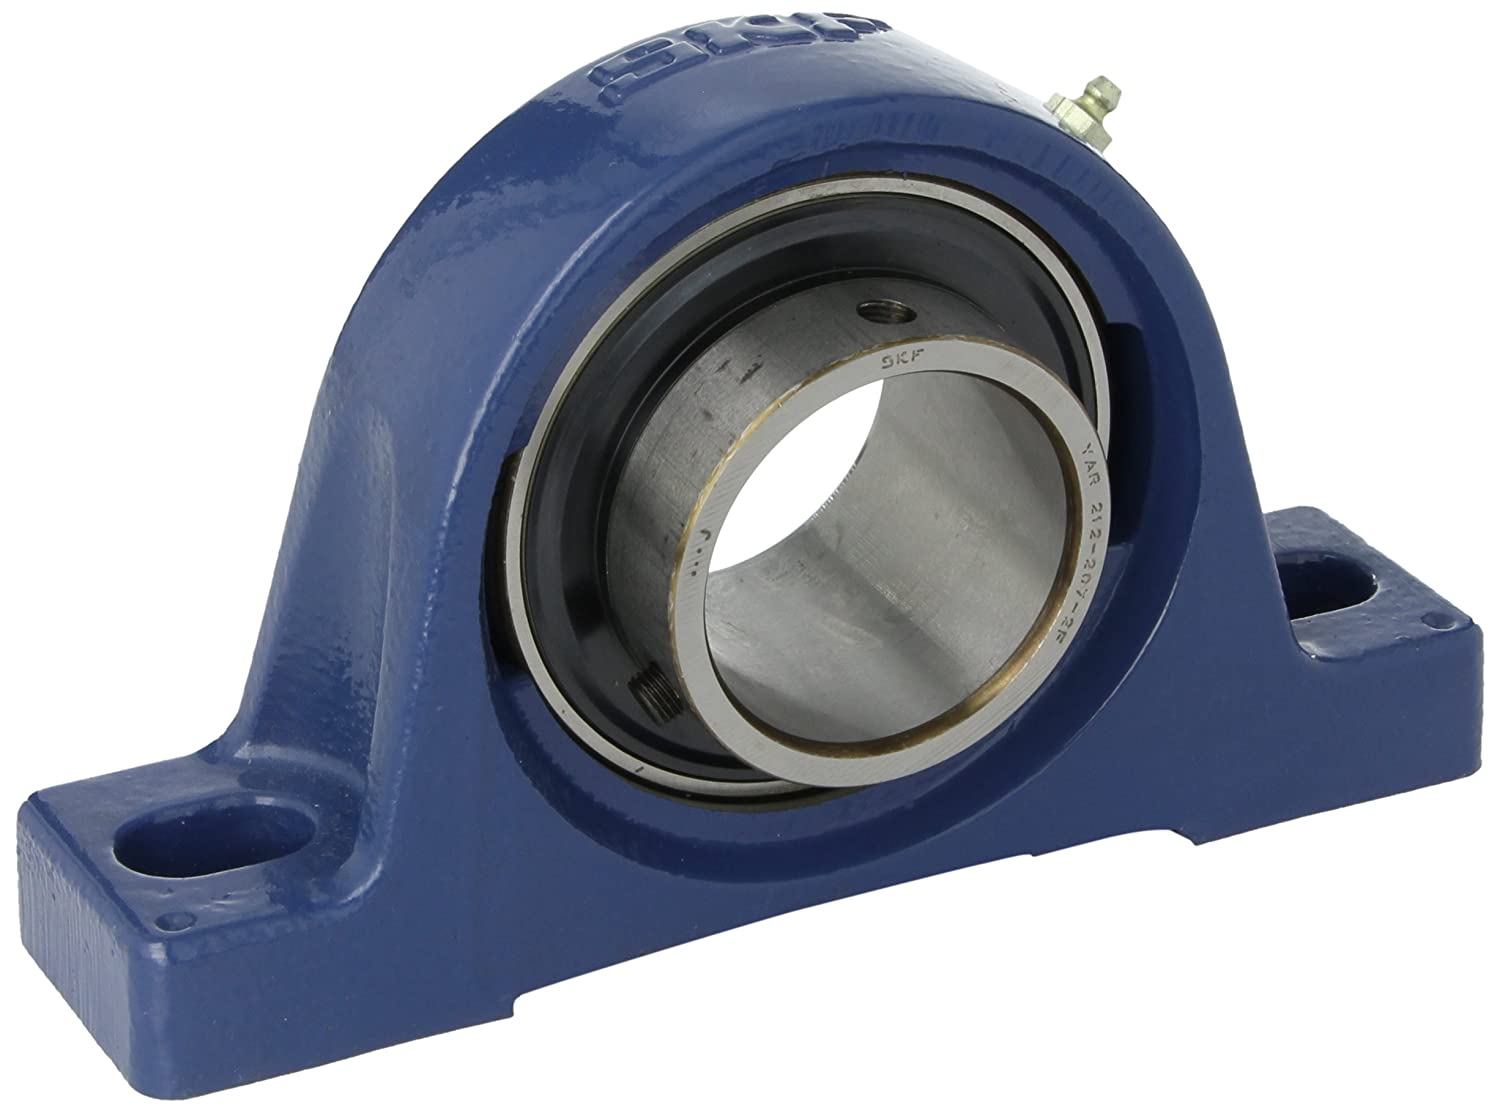 TF Pillow Block Ball Bearing 1 Shaft SKF SY 1 Contact Flinger Seals Setscrew Locking Collar 1-7//16 Base To Center Height Inch Cast Iron 2 Bolts 4 Bolt Hole Spacing Width 2430 pounds Dynamic Load Capacity